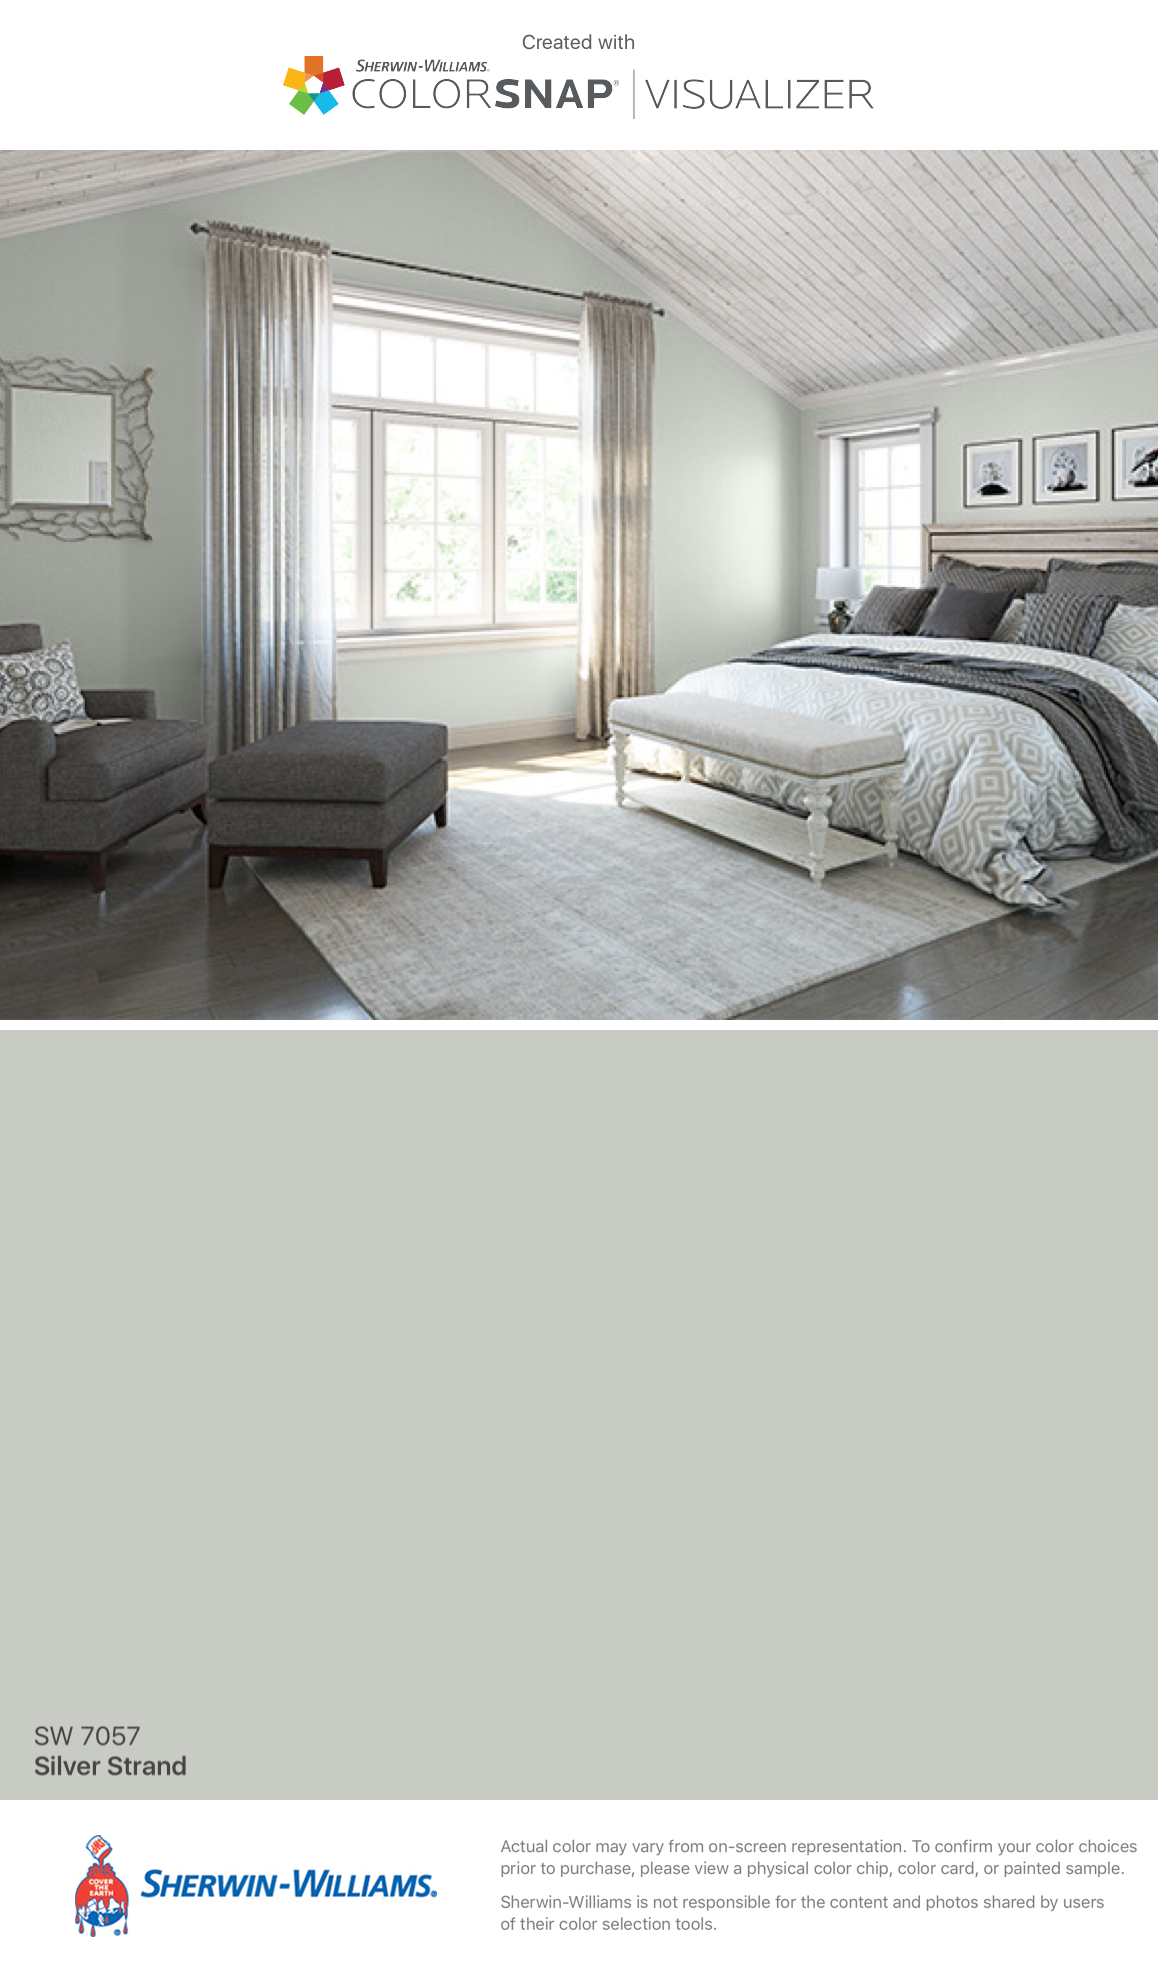 I Found This Color With Colorsnap Visualizer For Iphone By Sherwin Williams Silver Strand Sw 7057 Bedroom Colors Master Bedroom Paint Bedroom Paint Colors